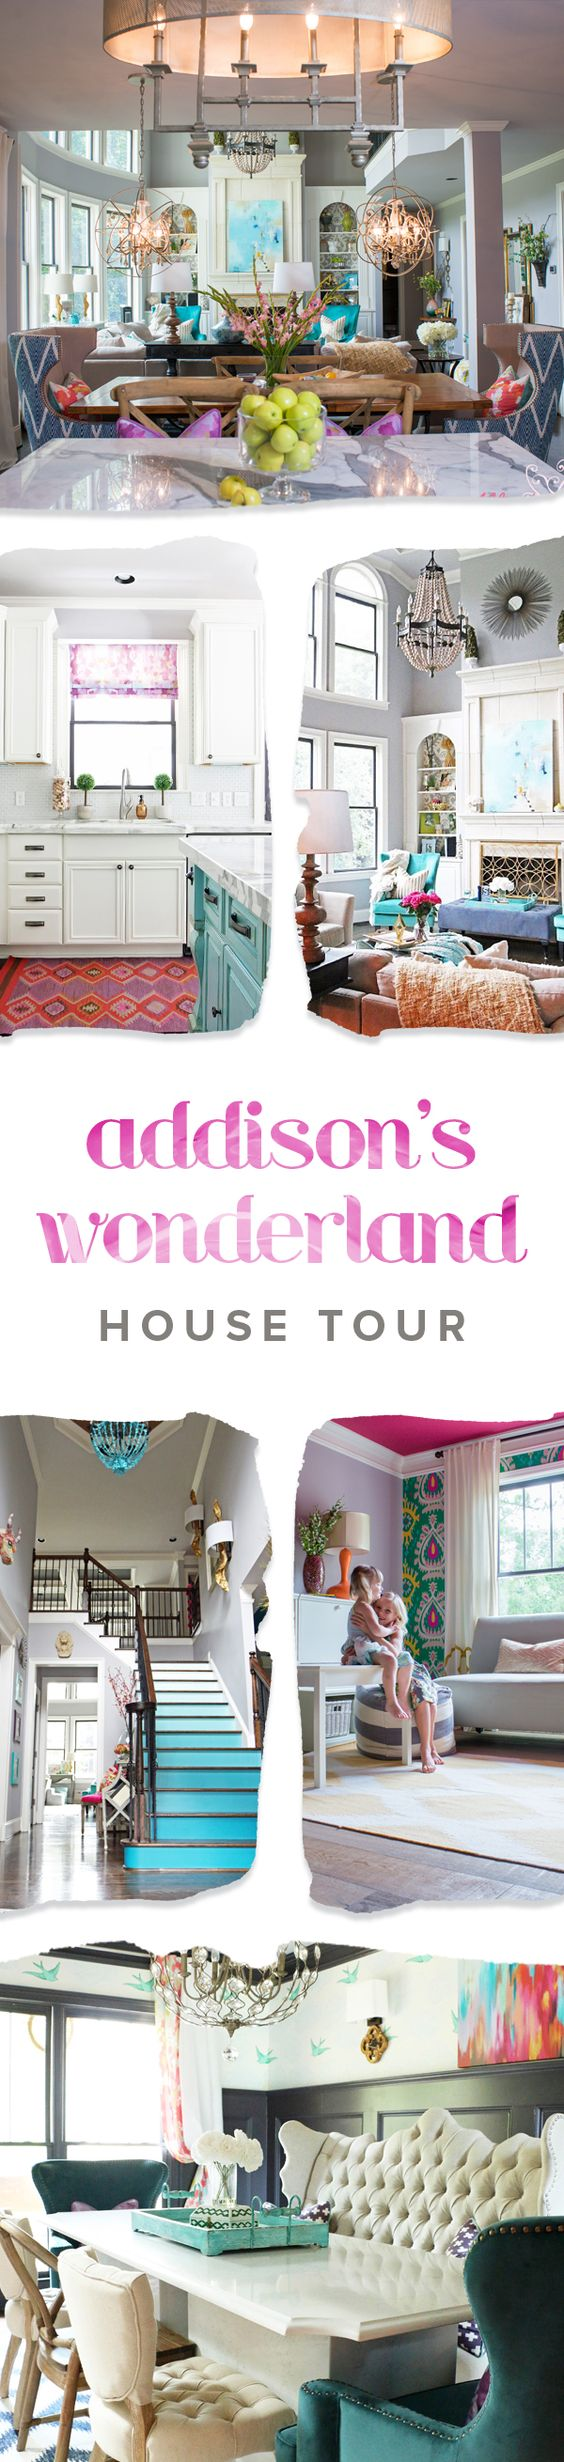 AW House Tour Image